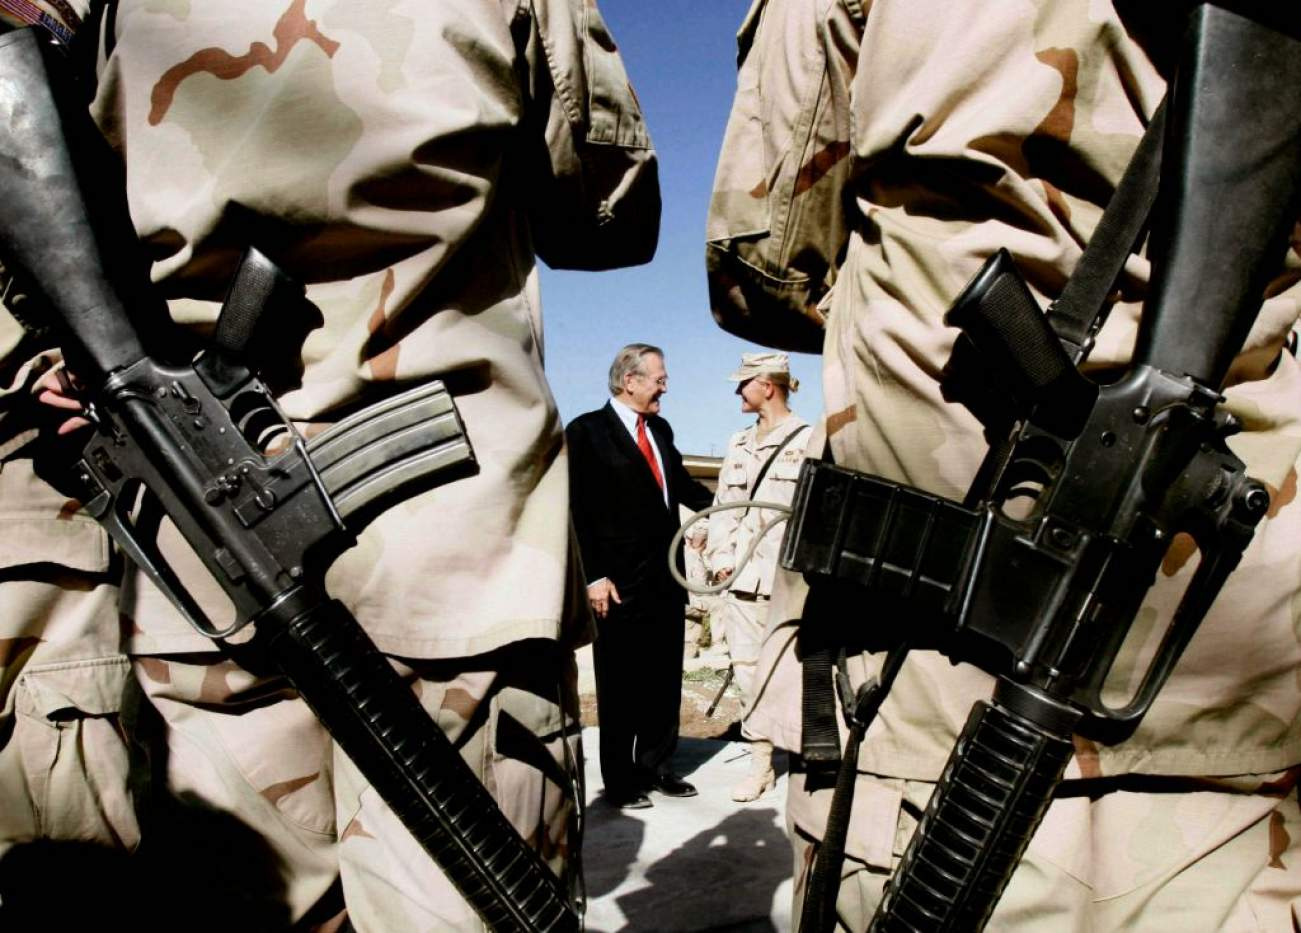 Soldiers from the 173rd Airborne stand while waiting to have their picture taken with U.S. Secretary of Defense Donald Rumsfeld (C, left) before he leaves for Baghdad, in Khandahar, Afghanistan December 22, 2005. Rumsfeld said on Thursday a rapid withdrawal of U.S. forces from Iraq or Afghanistan would spawn more terrorism in the region and raise the risk of attacks on the United States. Addressing U.S. troops on the second day of a visit to Afghanistan, Rumsfeld said